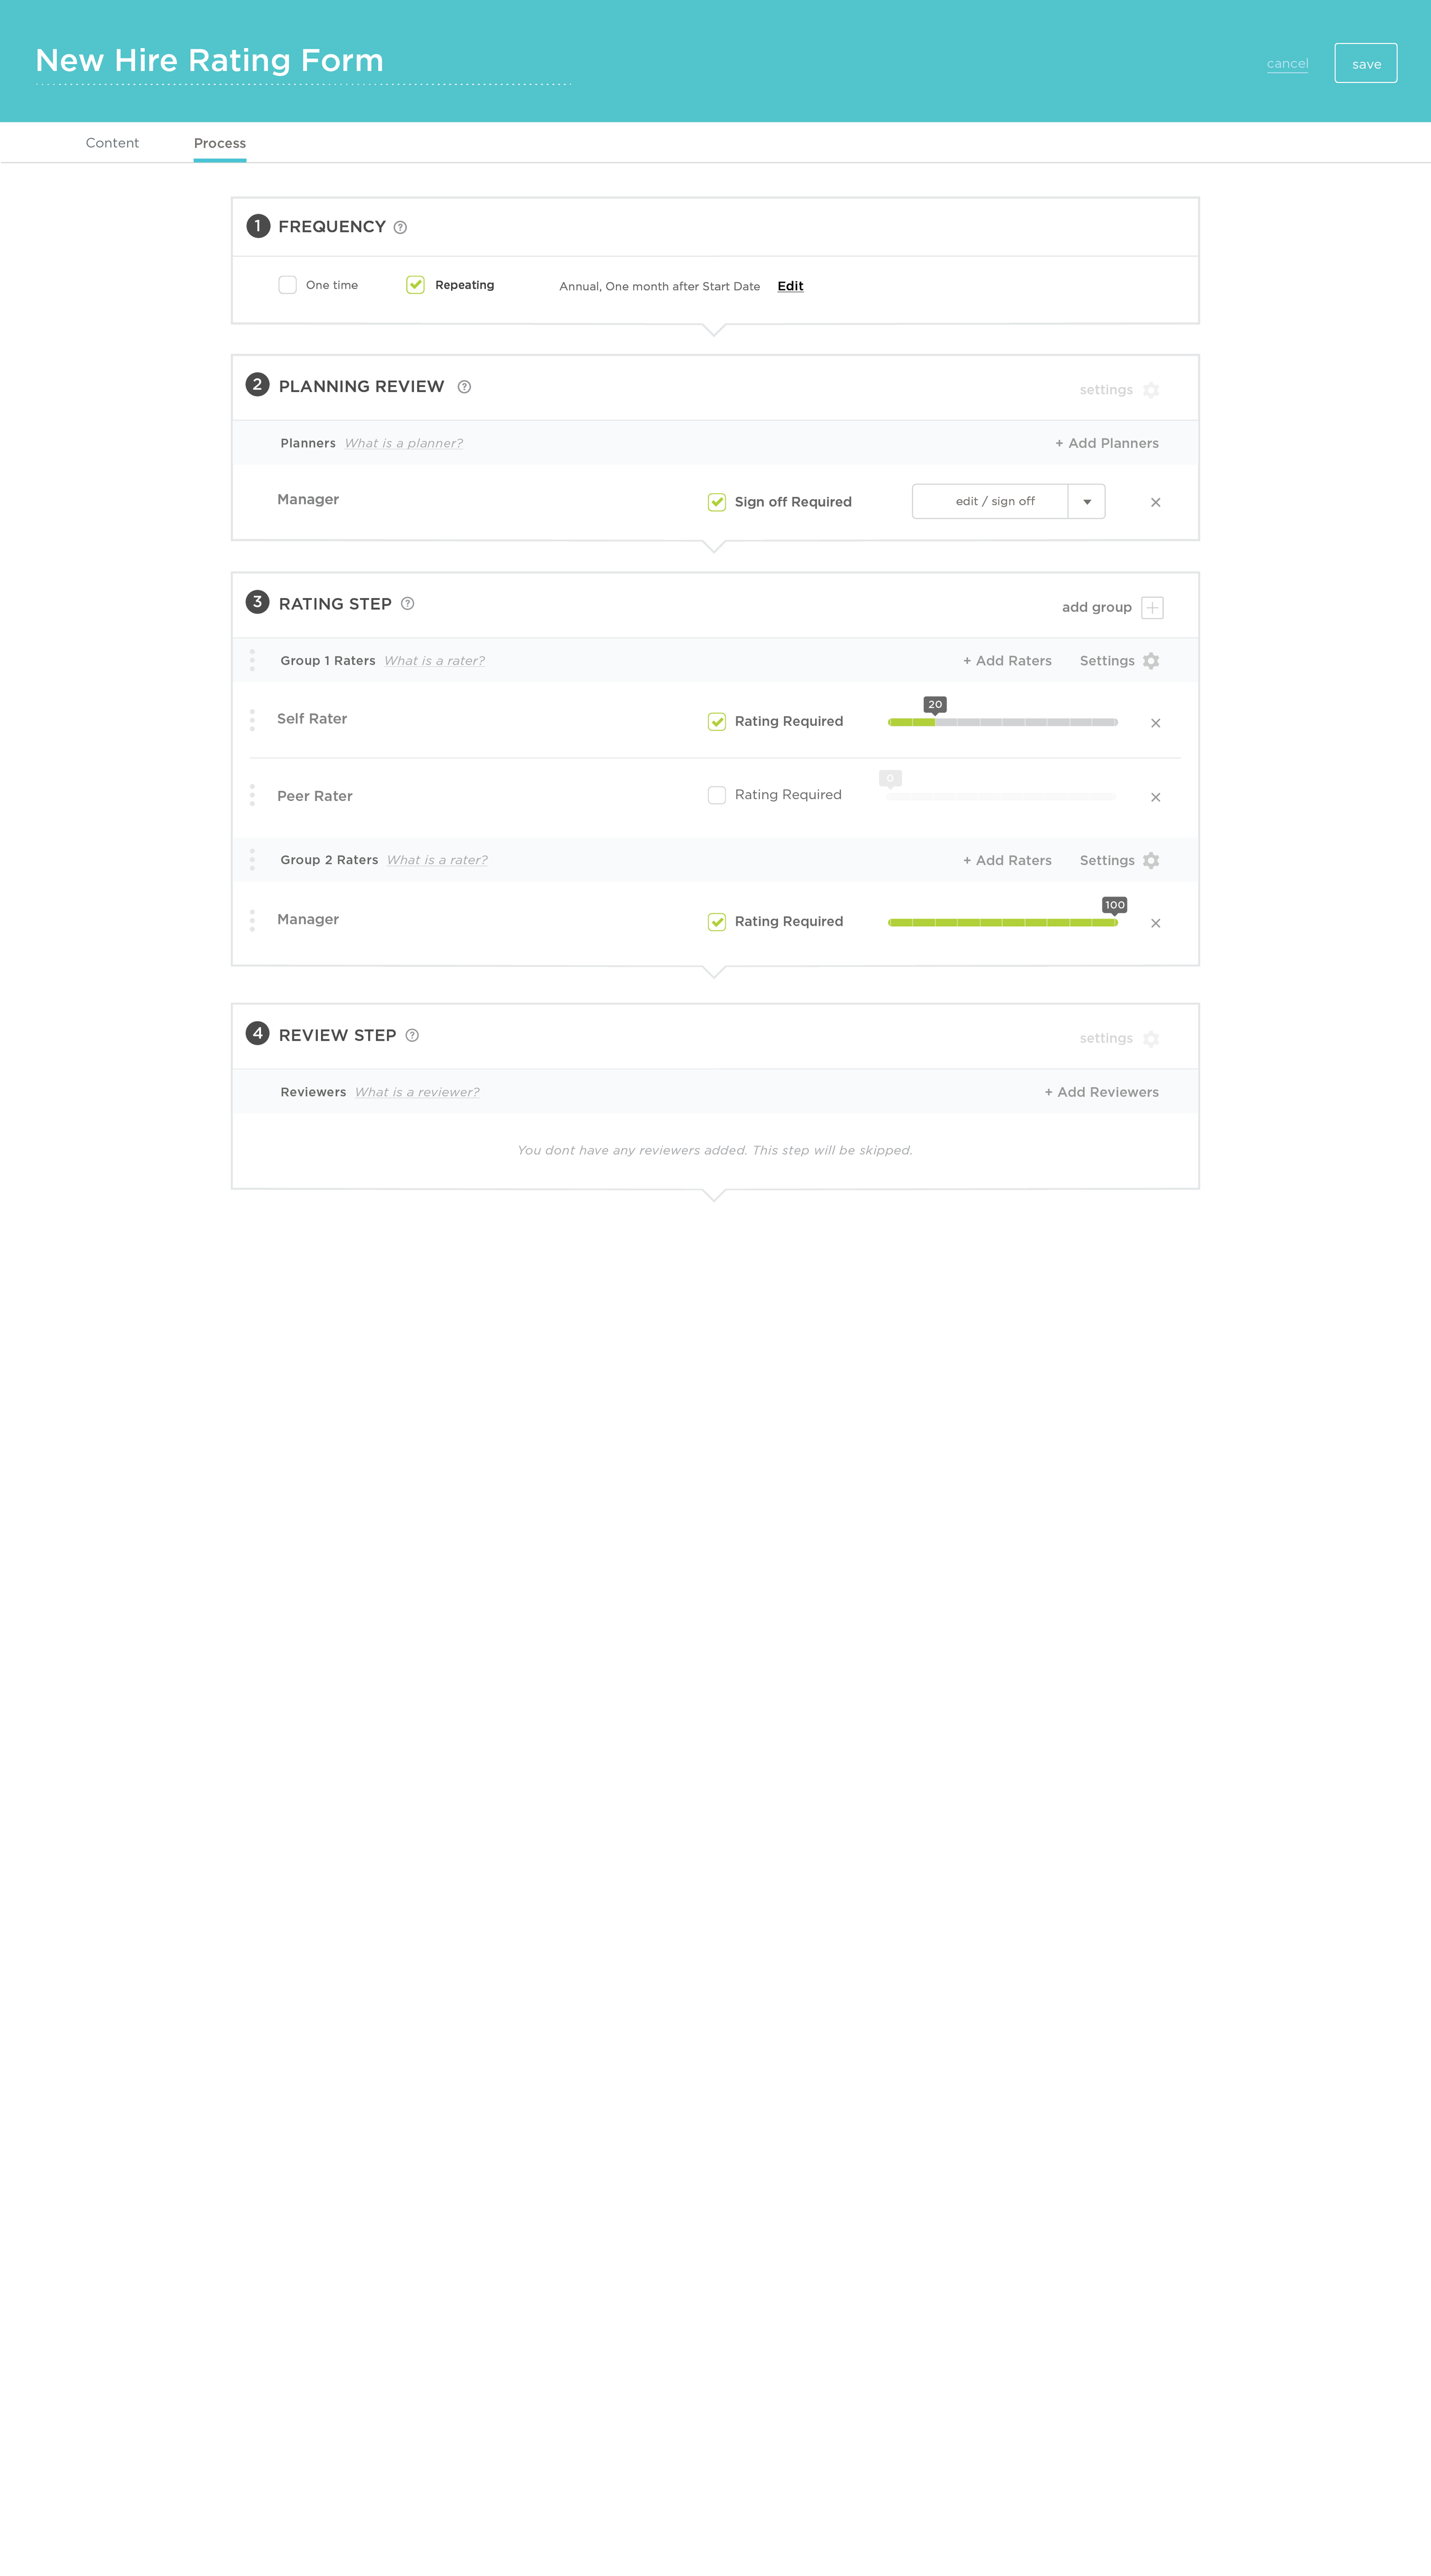 Invision_Pe_rating-form-process_03_17.png